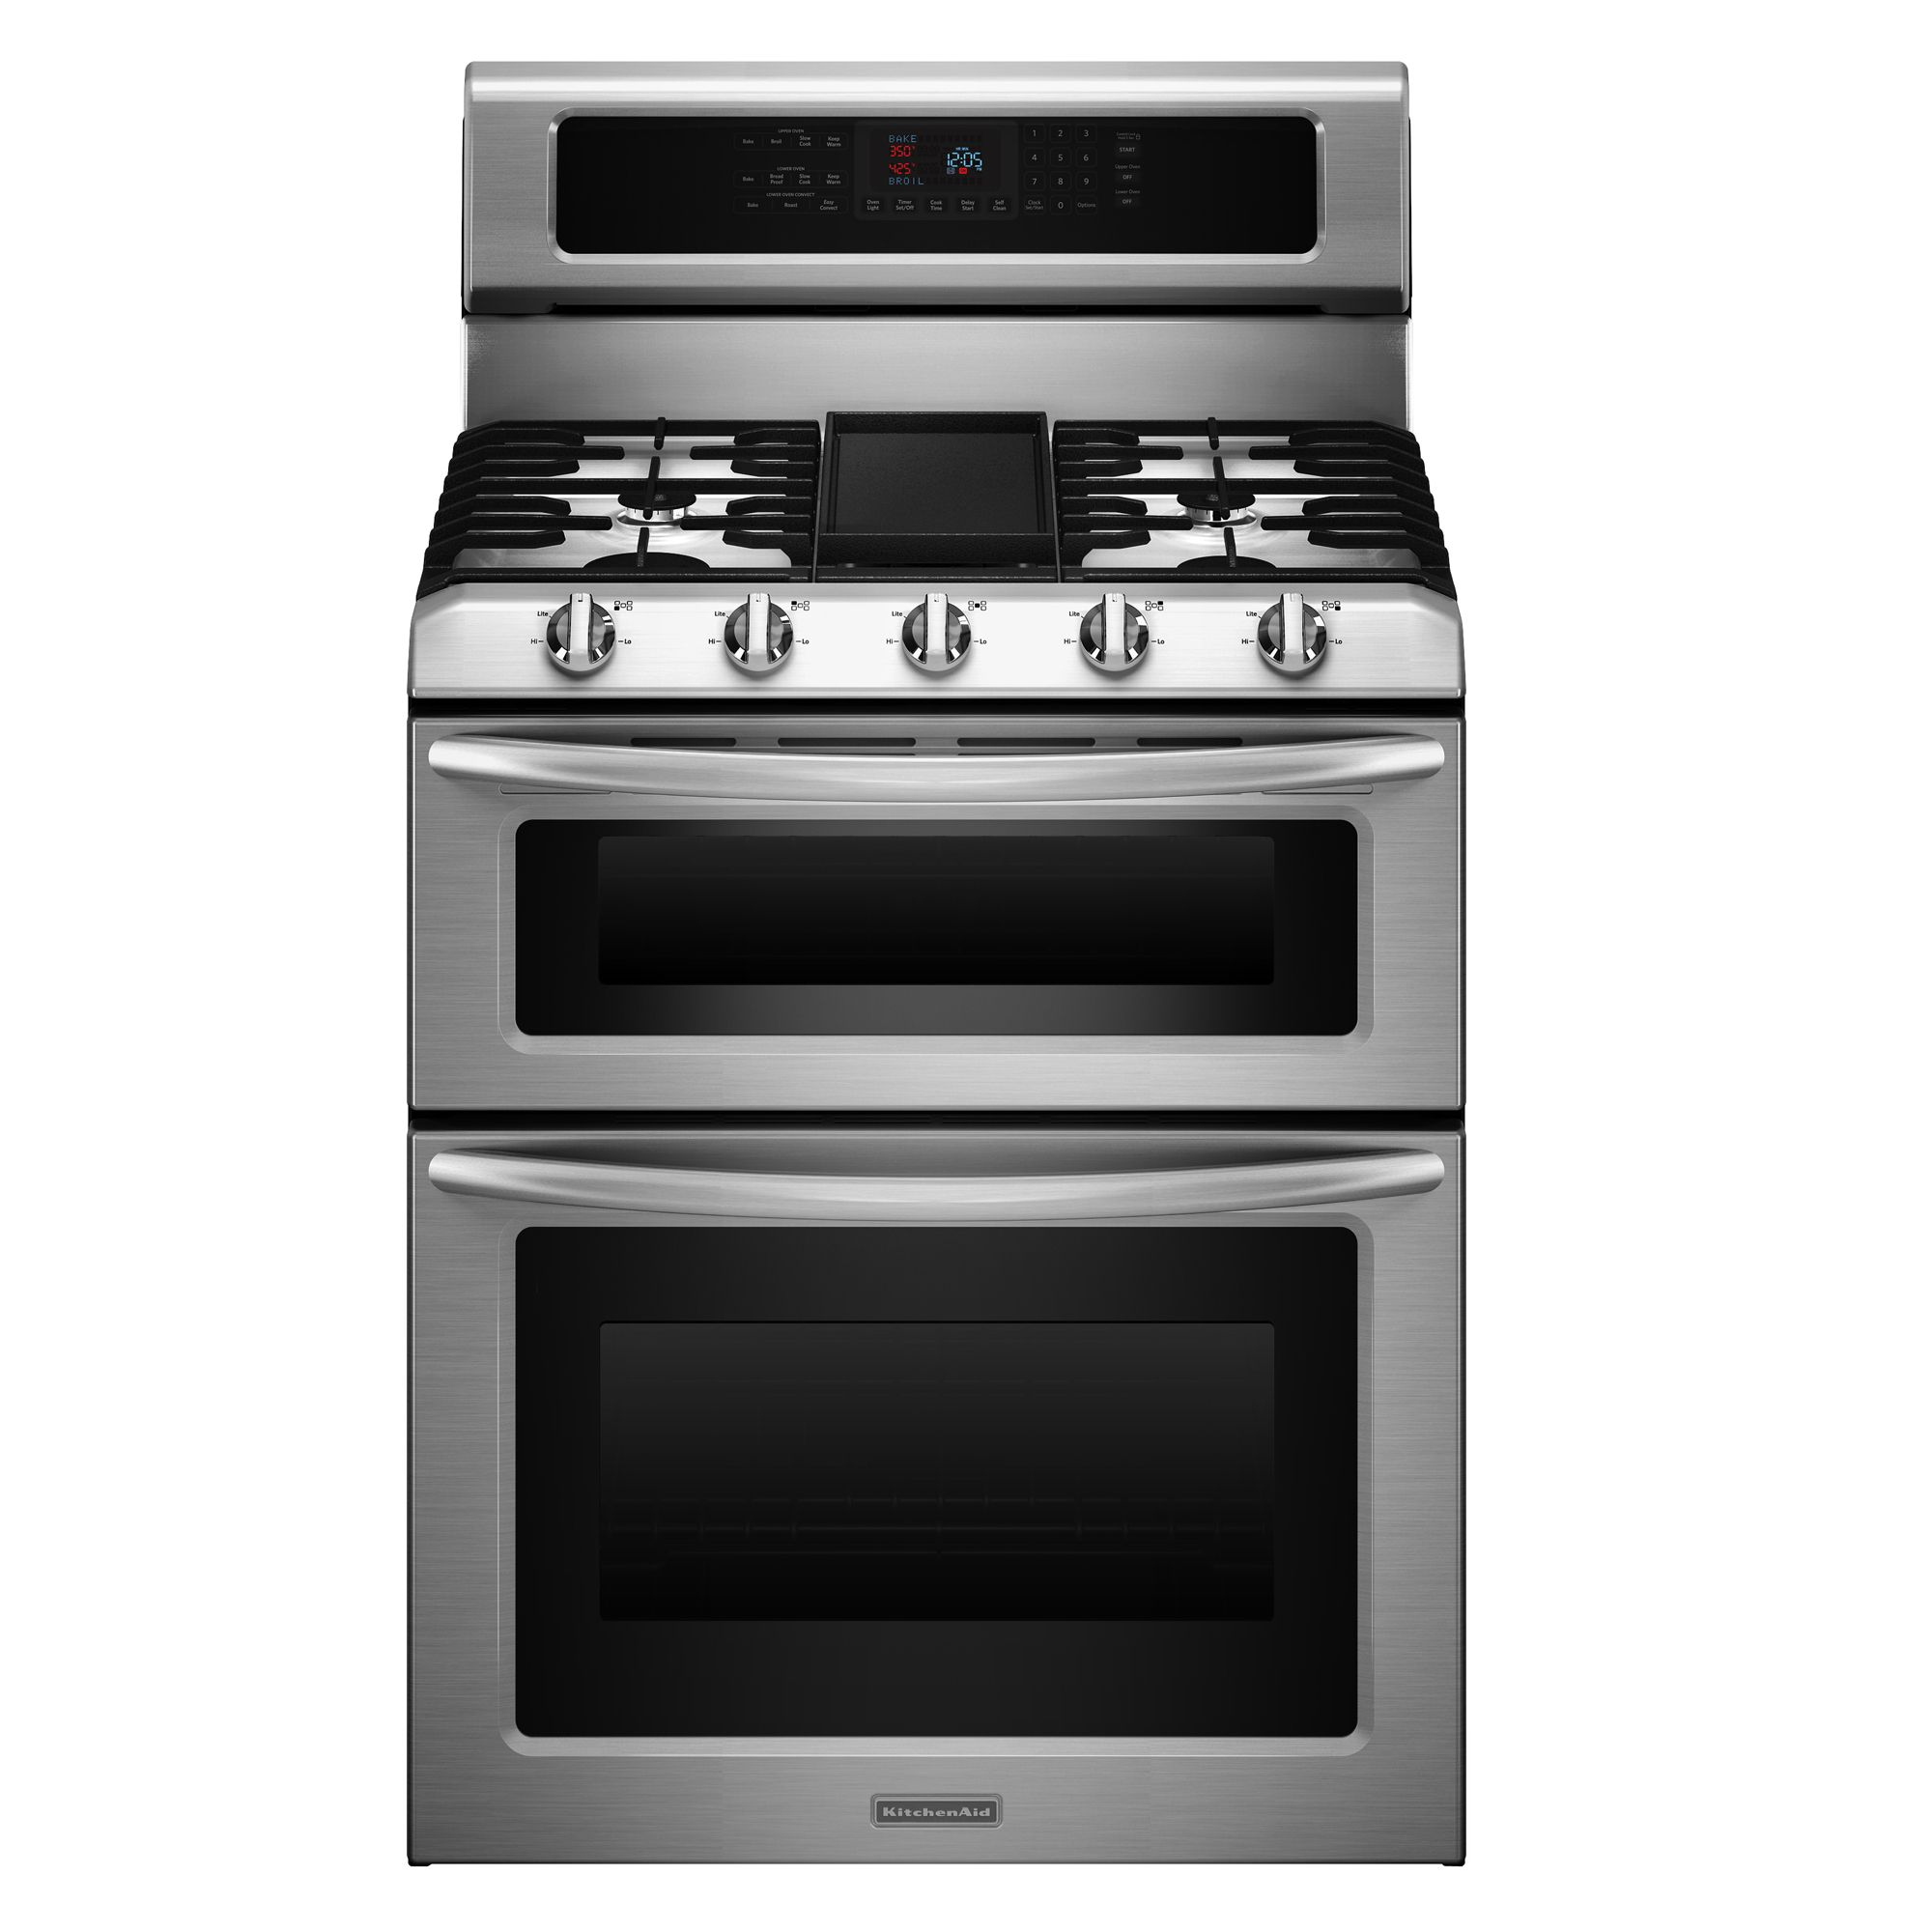 "KitchenAid 30"" Double Oven Freestanding Gas Range"